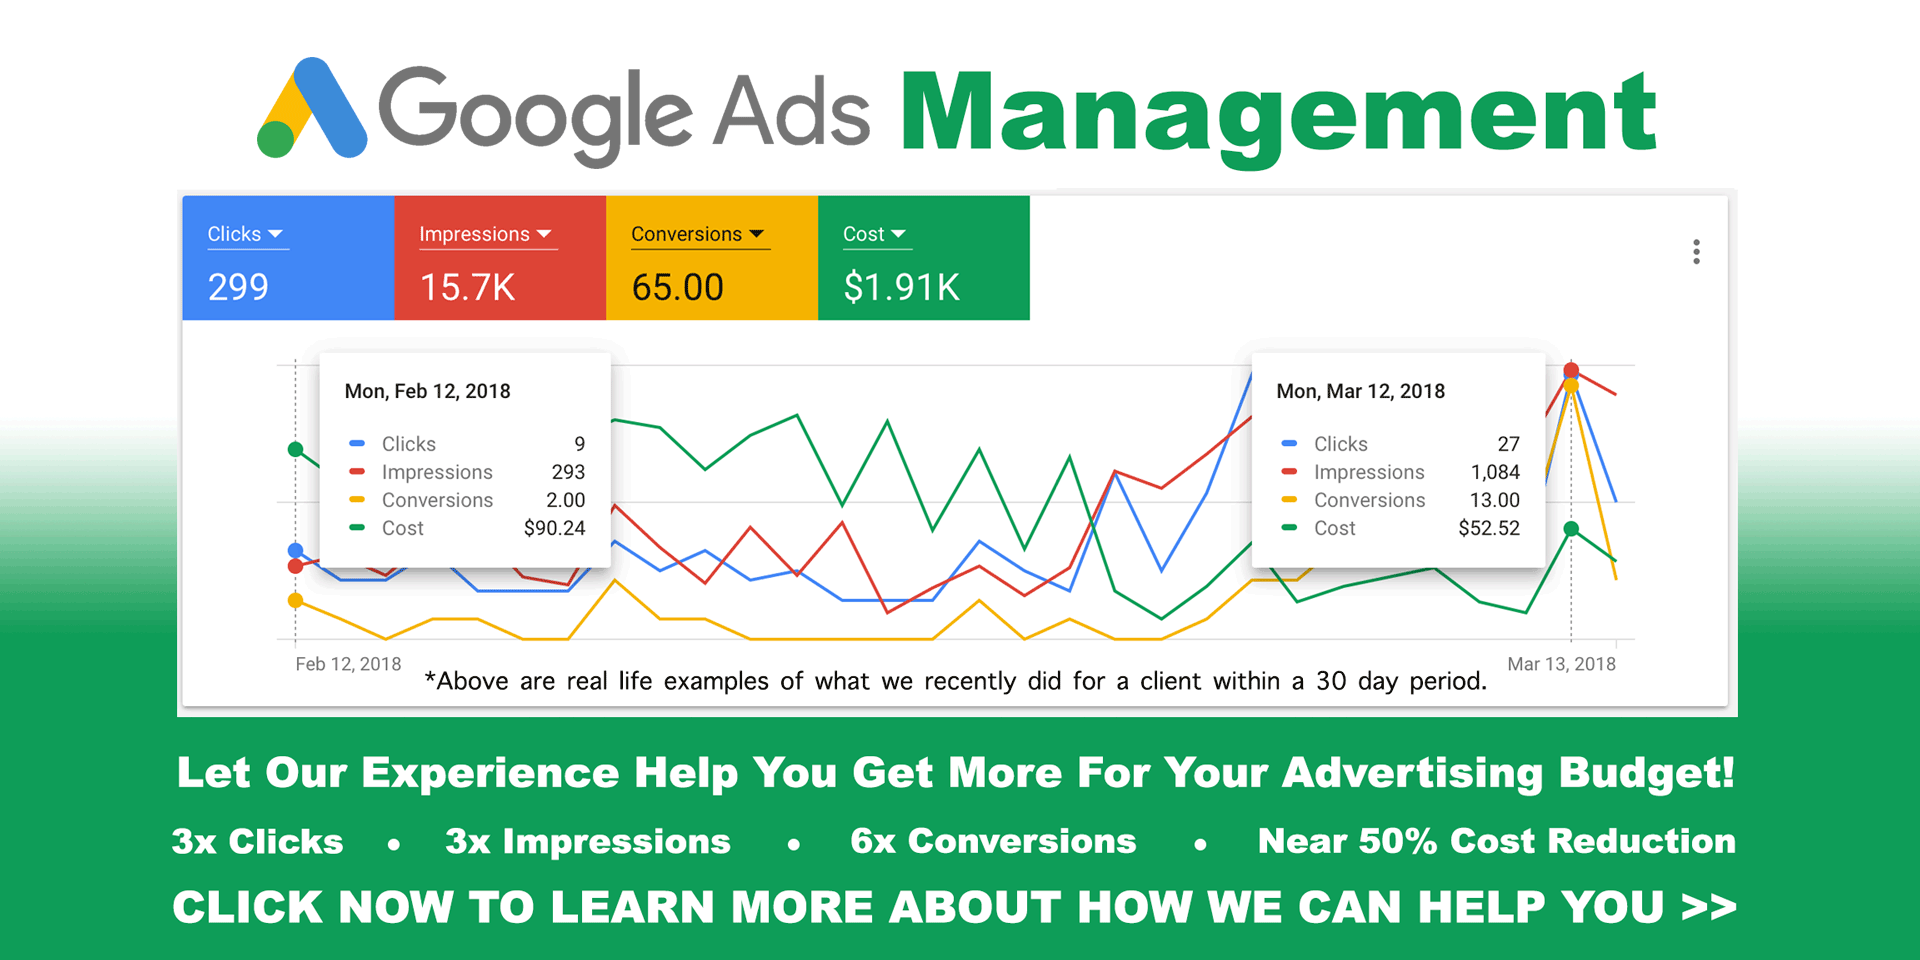 Google Ads Management Services Consultation